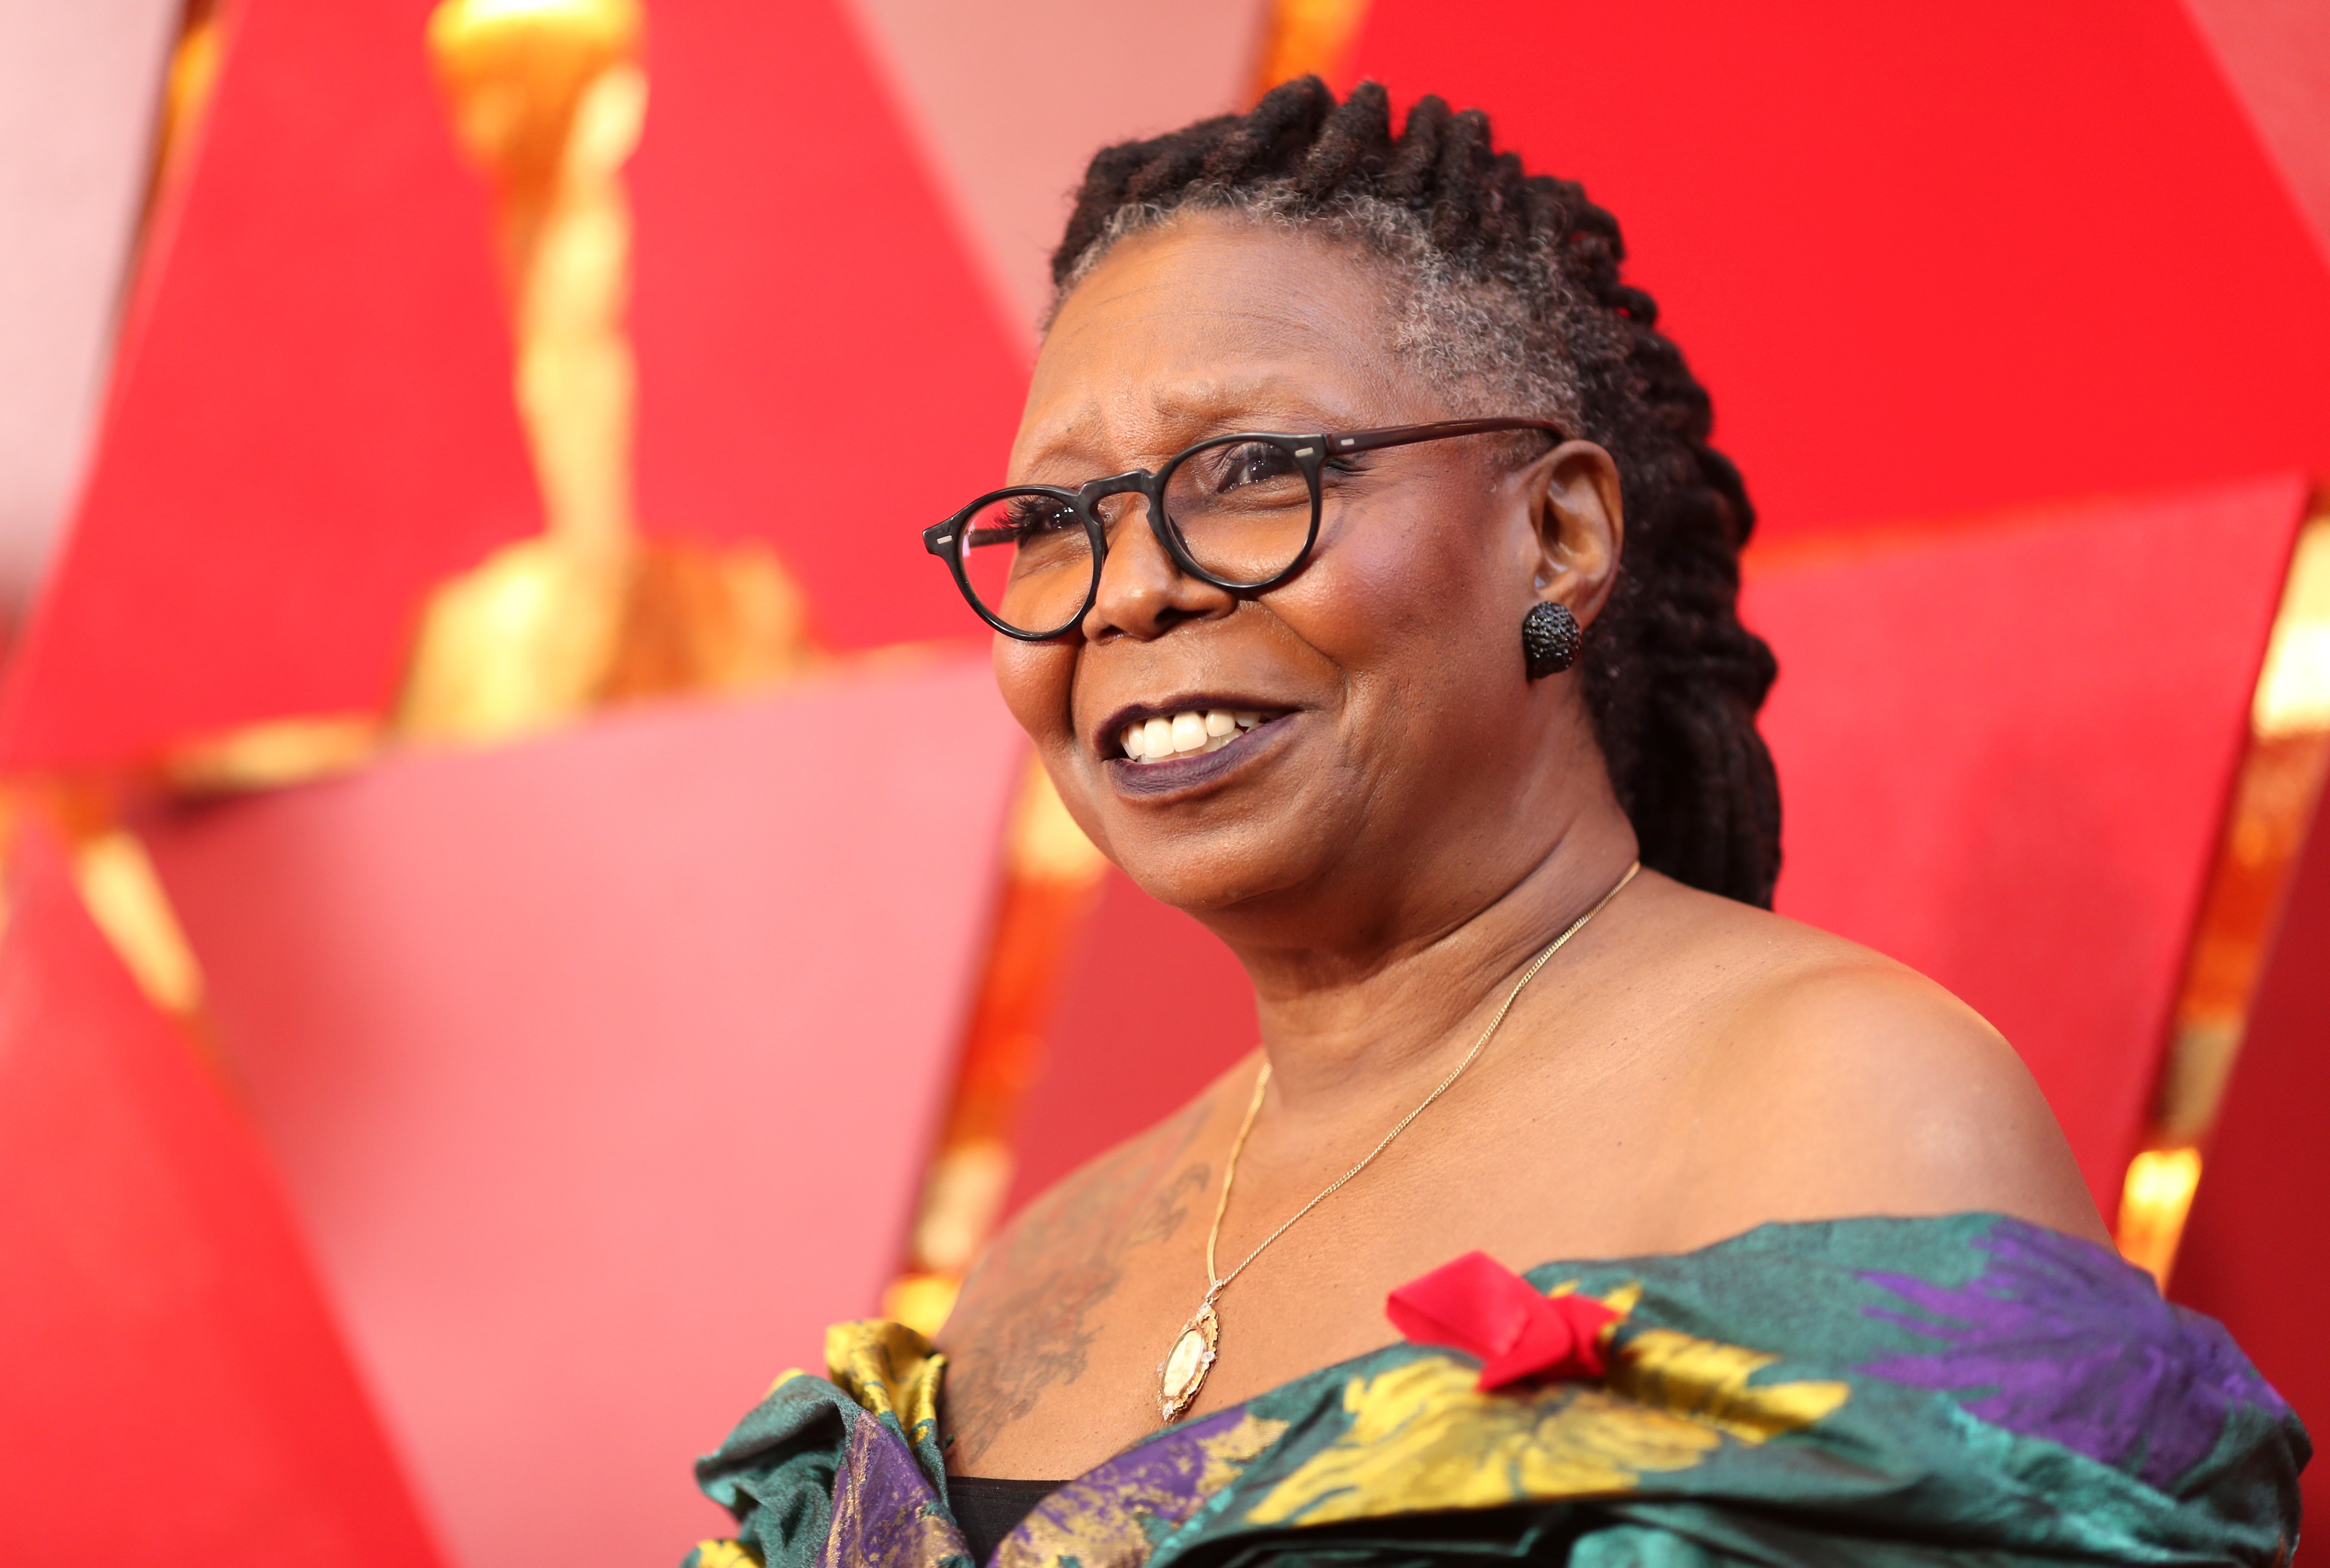 Whoopi Goldberg received mixed emotions from fans for her return to Blue Bloods. | Photo: Getty Images